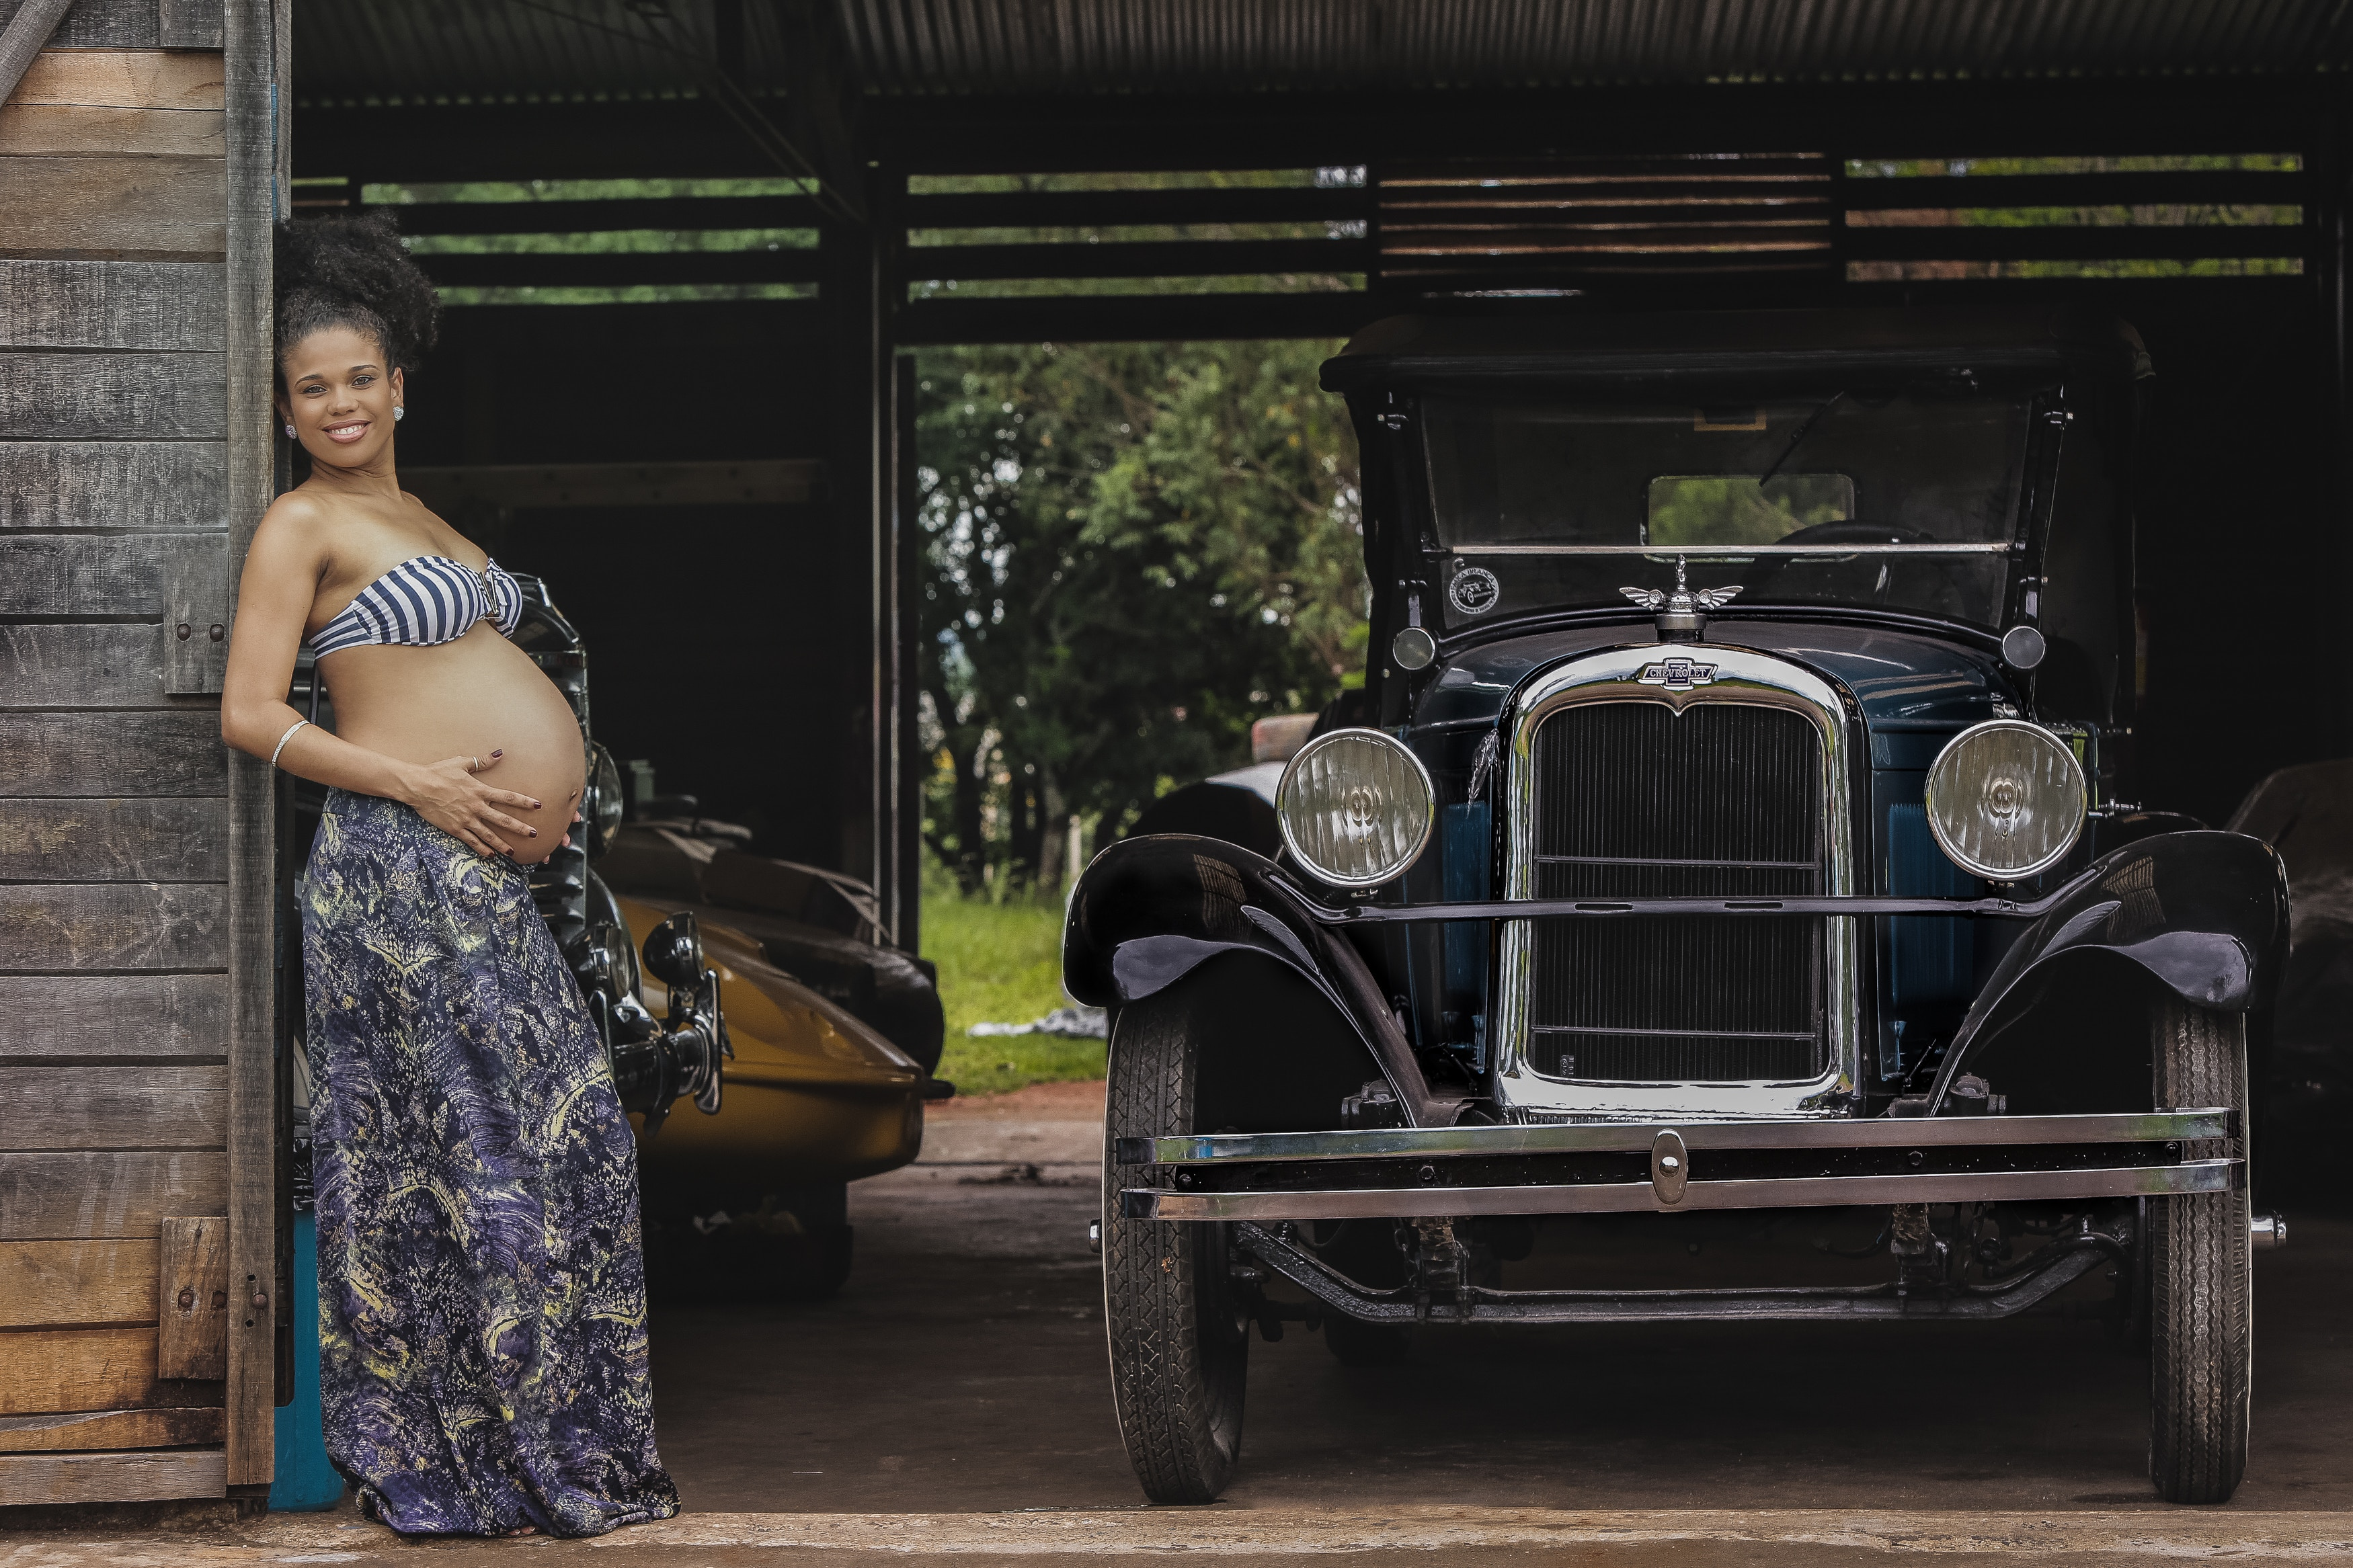 boho-pregnant-woman-standing-in-garage-by-vintage-car-happy-pregnancies